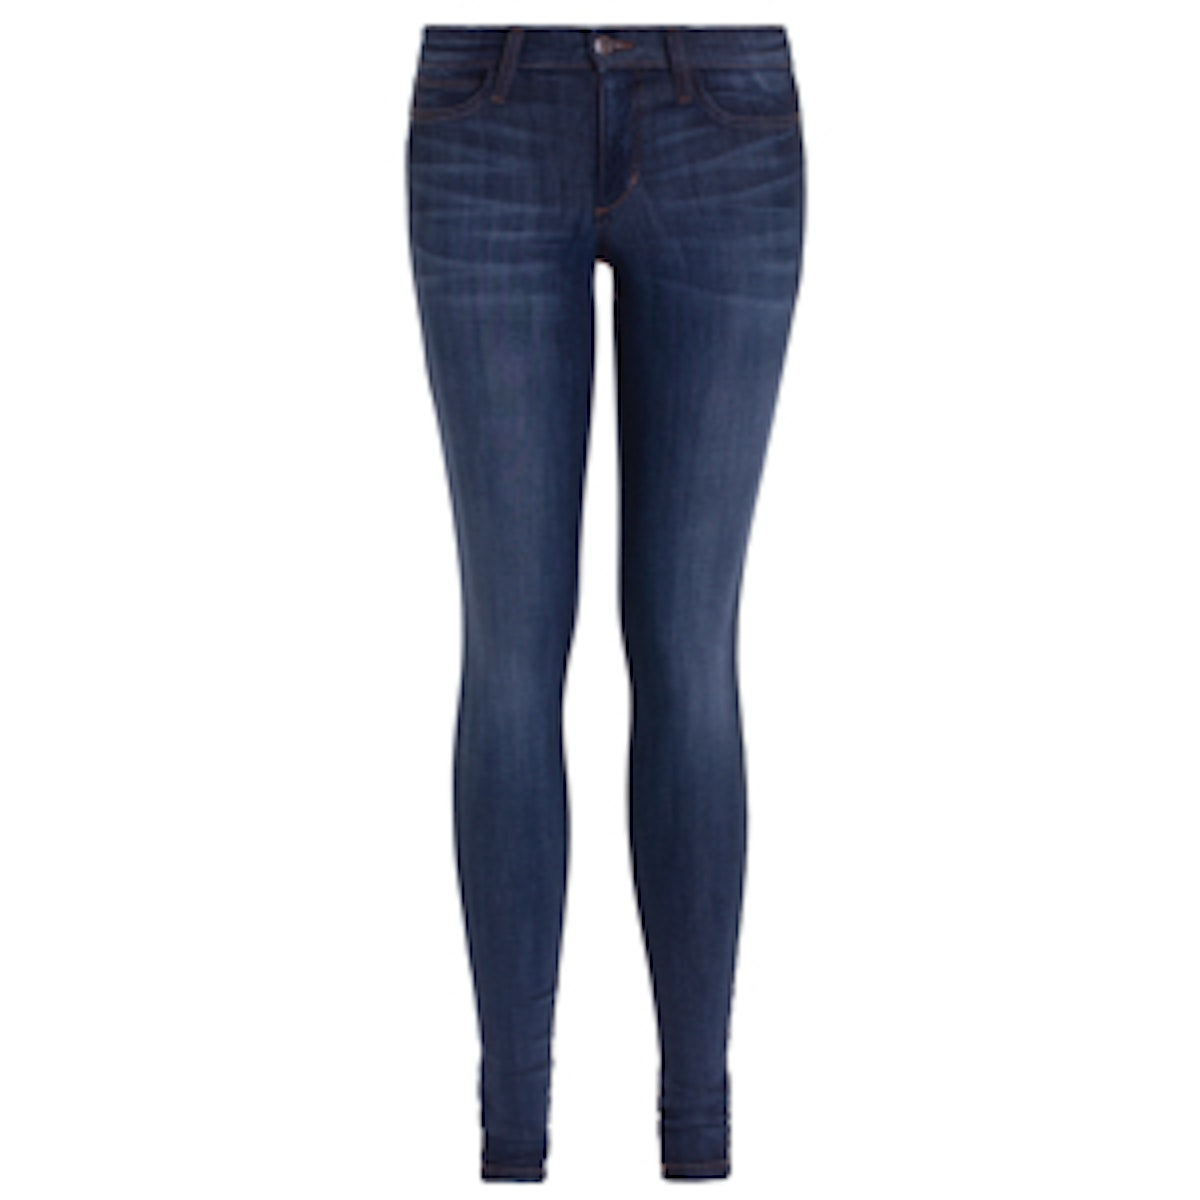 Beatrix High Rise Skinny Jeans in Flawless